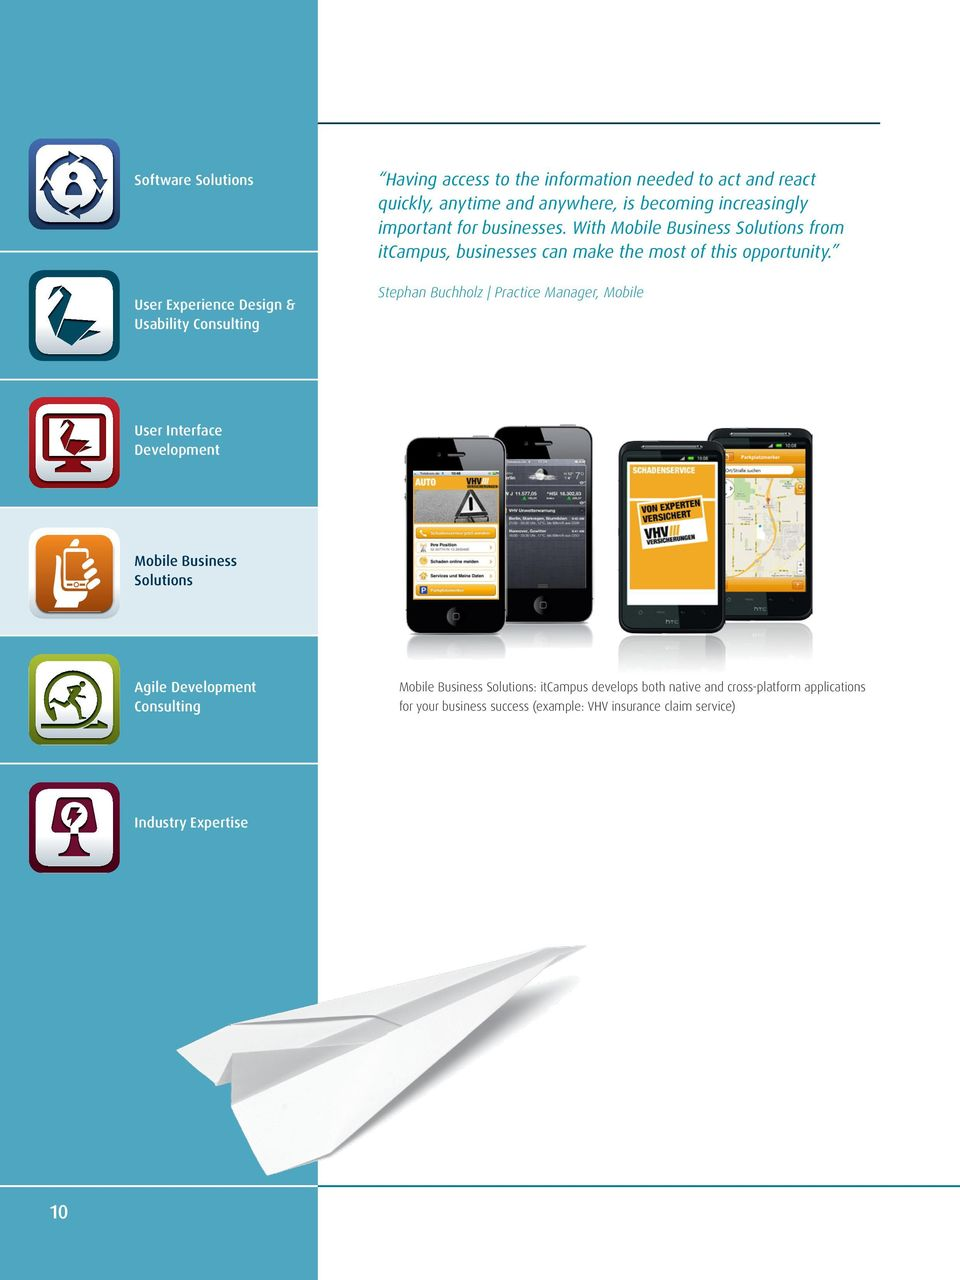 With Mobile Business Solutions from itcampus, businesses can make the most of this opportunity.